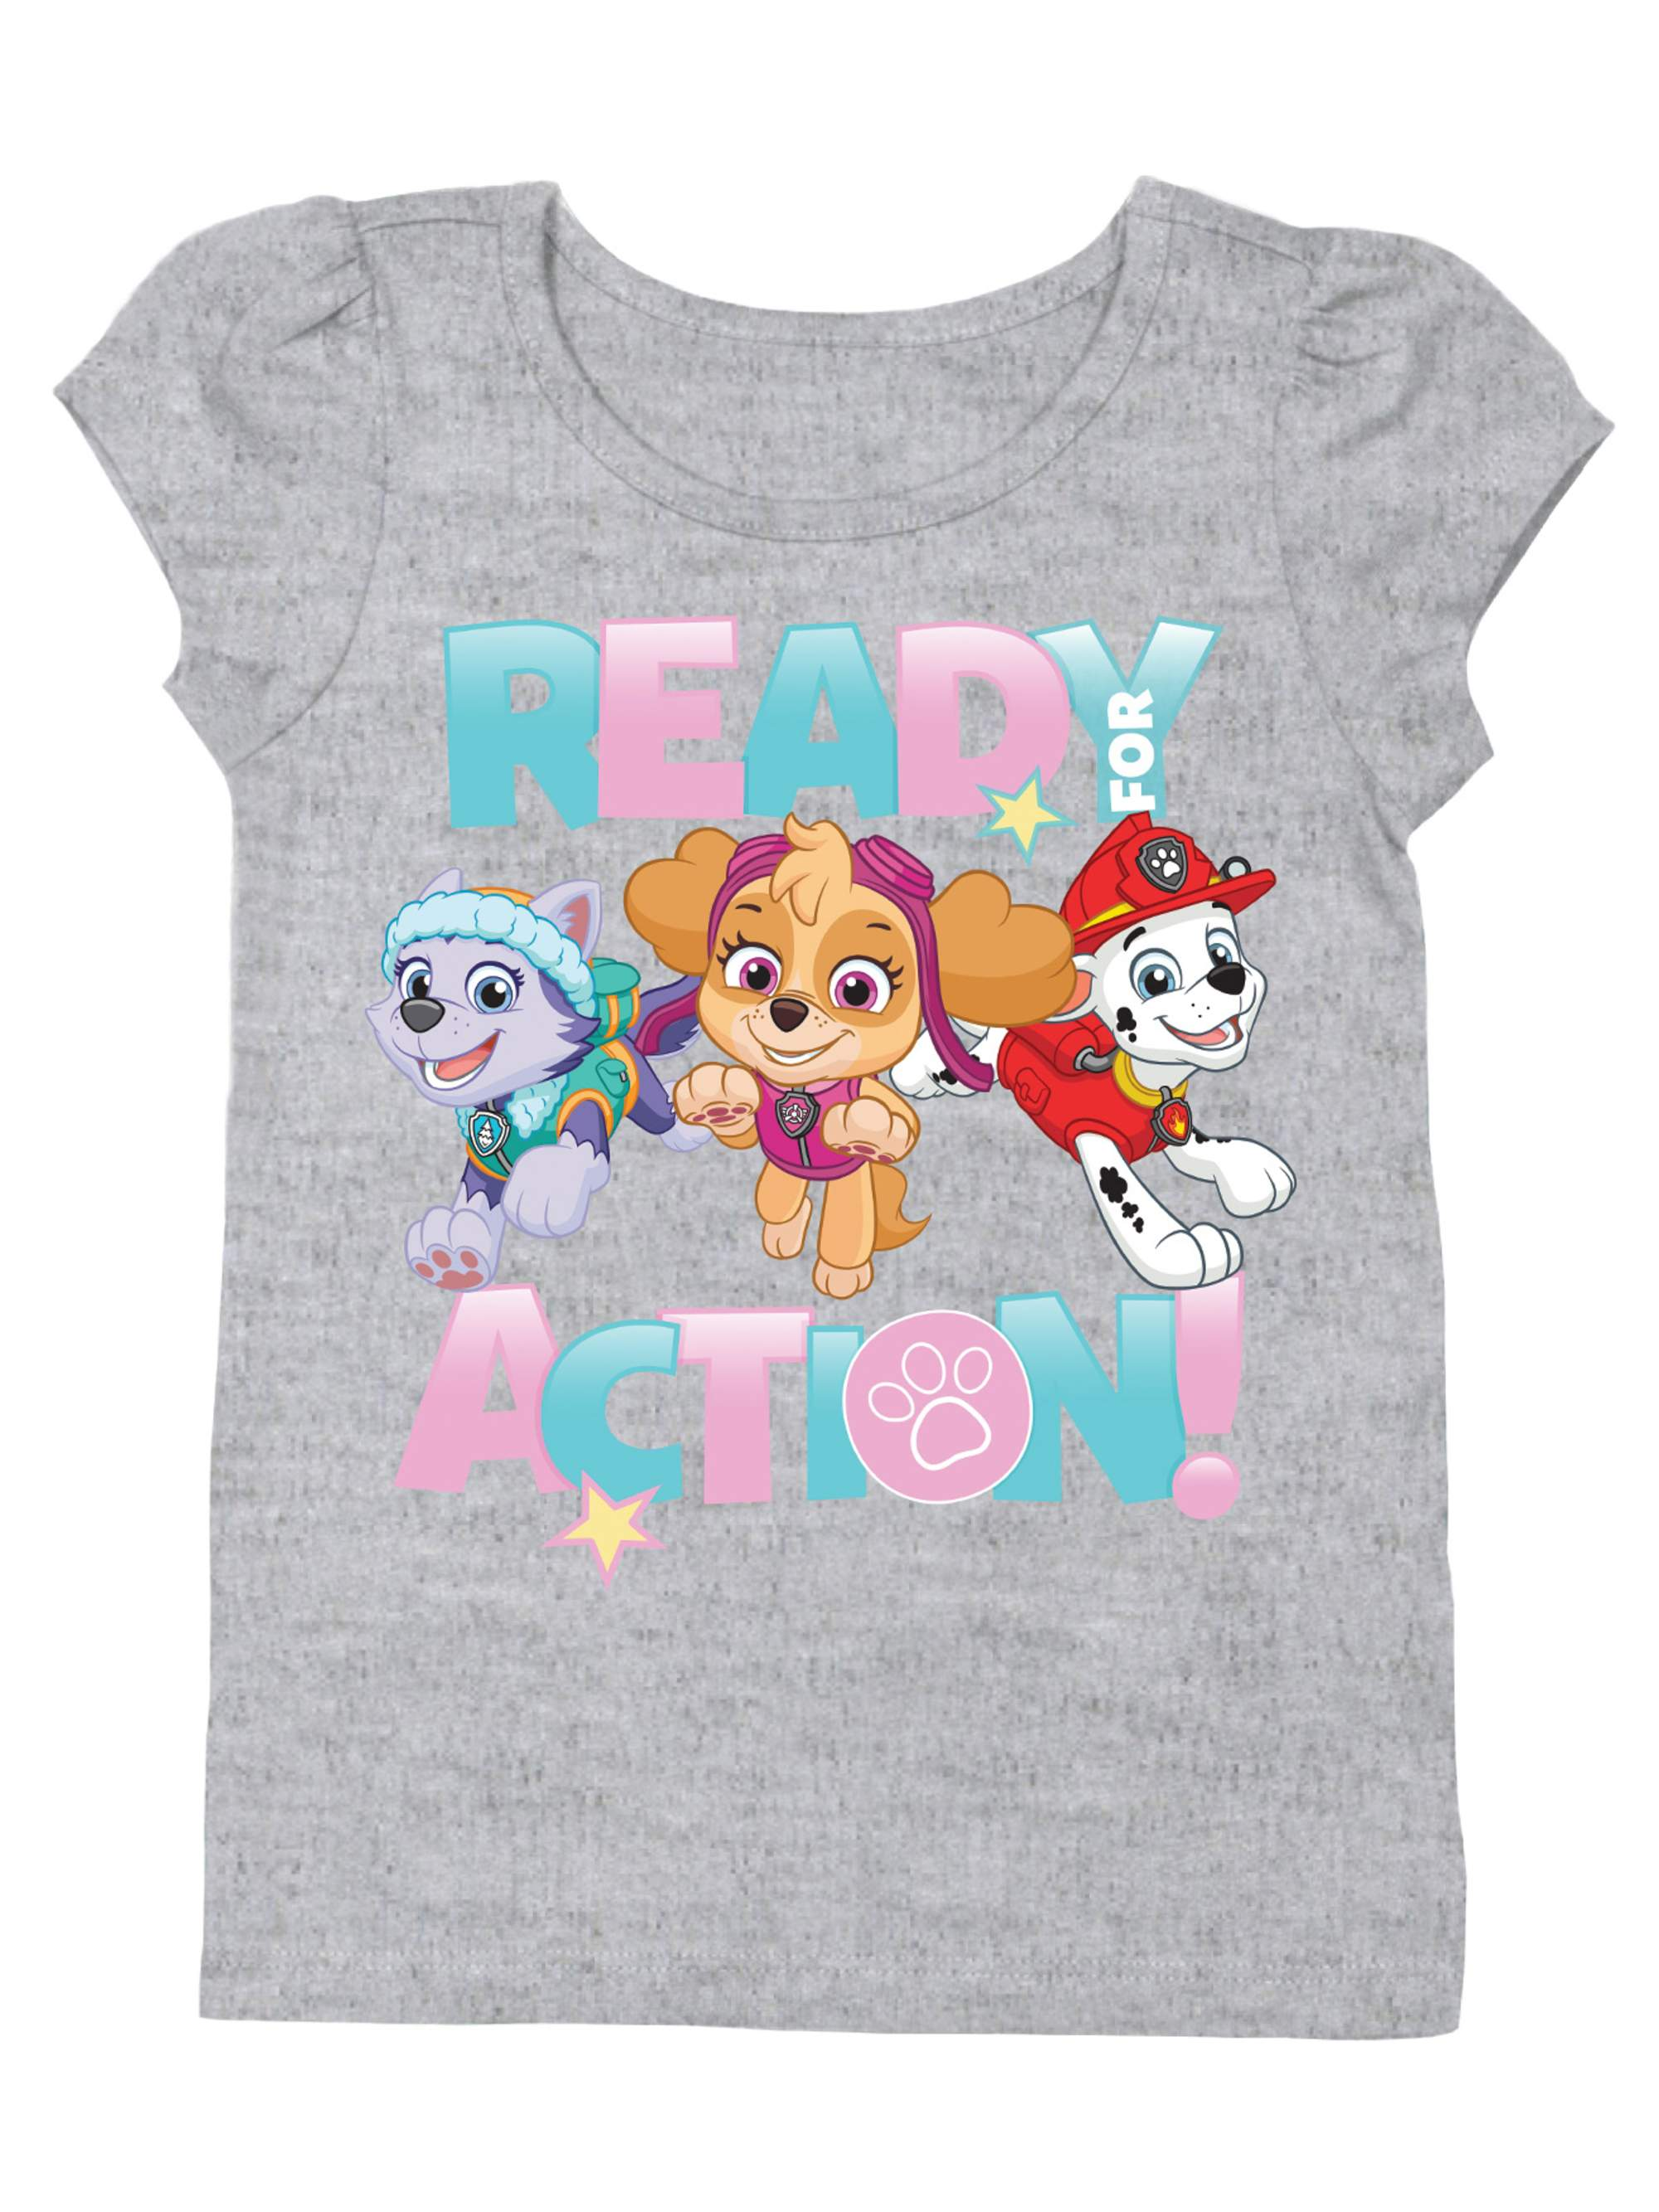 """Ready for Action"" Short Sleeve Graphic Tshirt (Toddler Girls)"